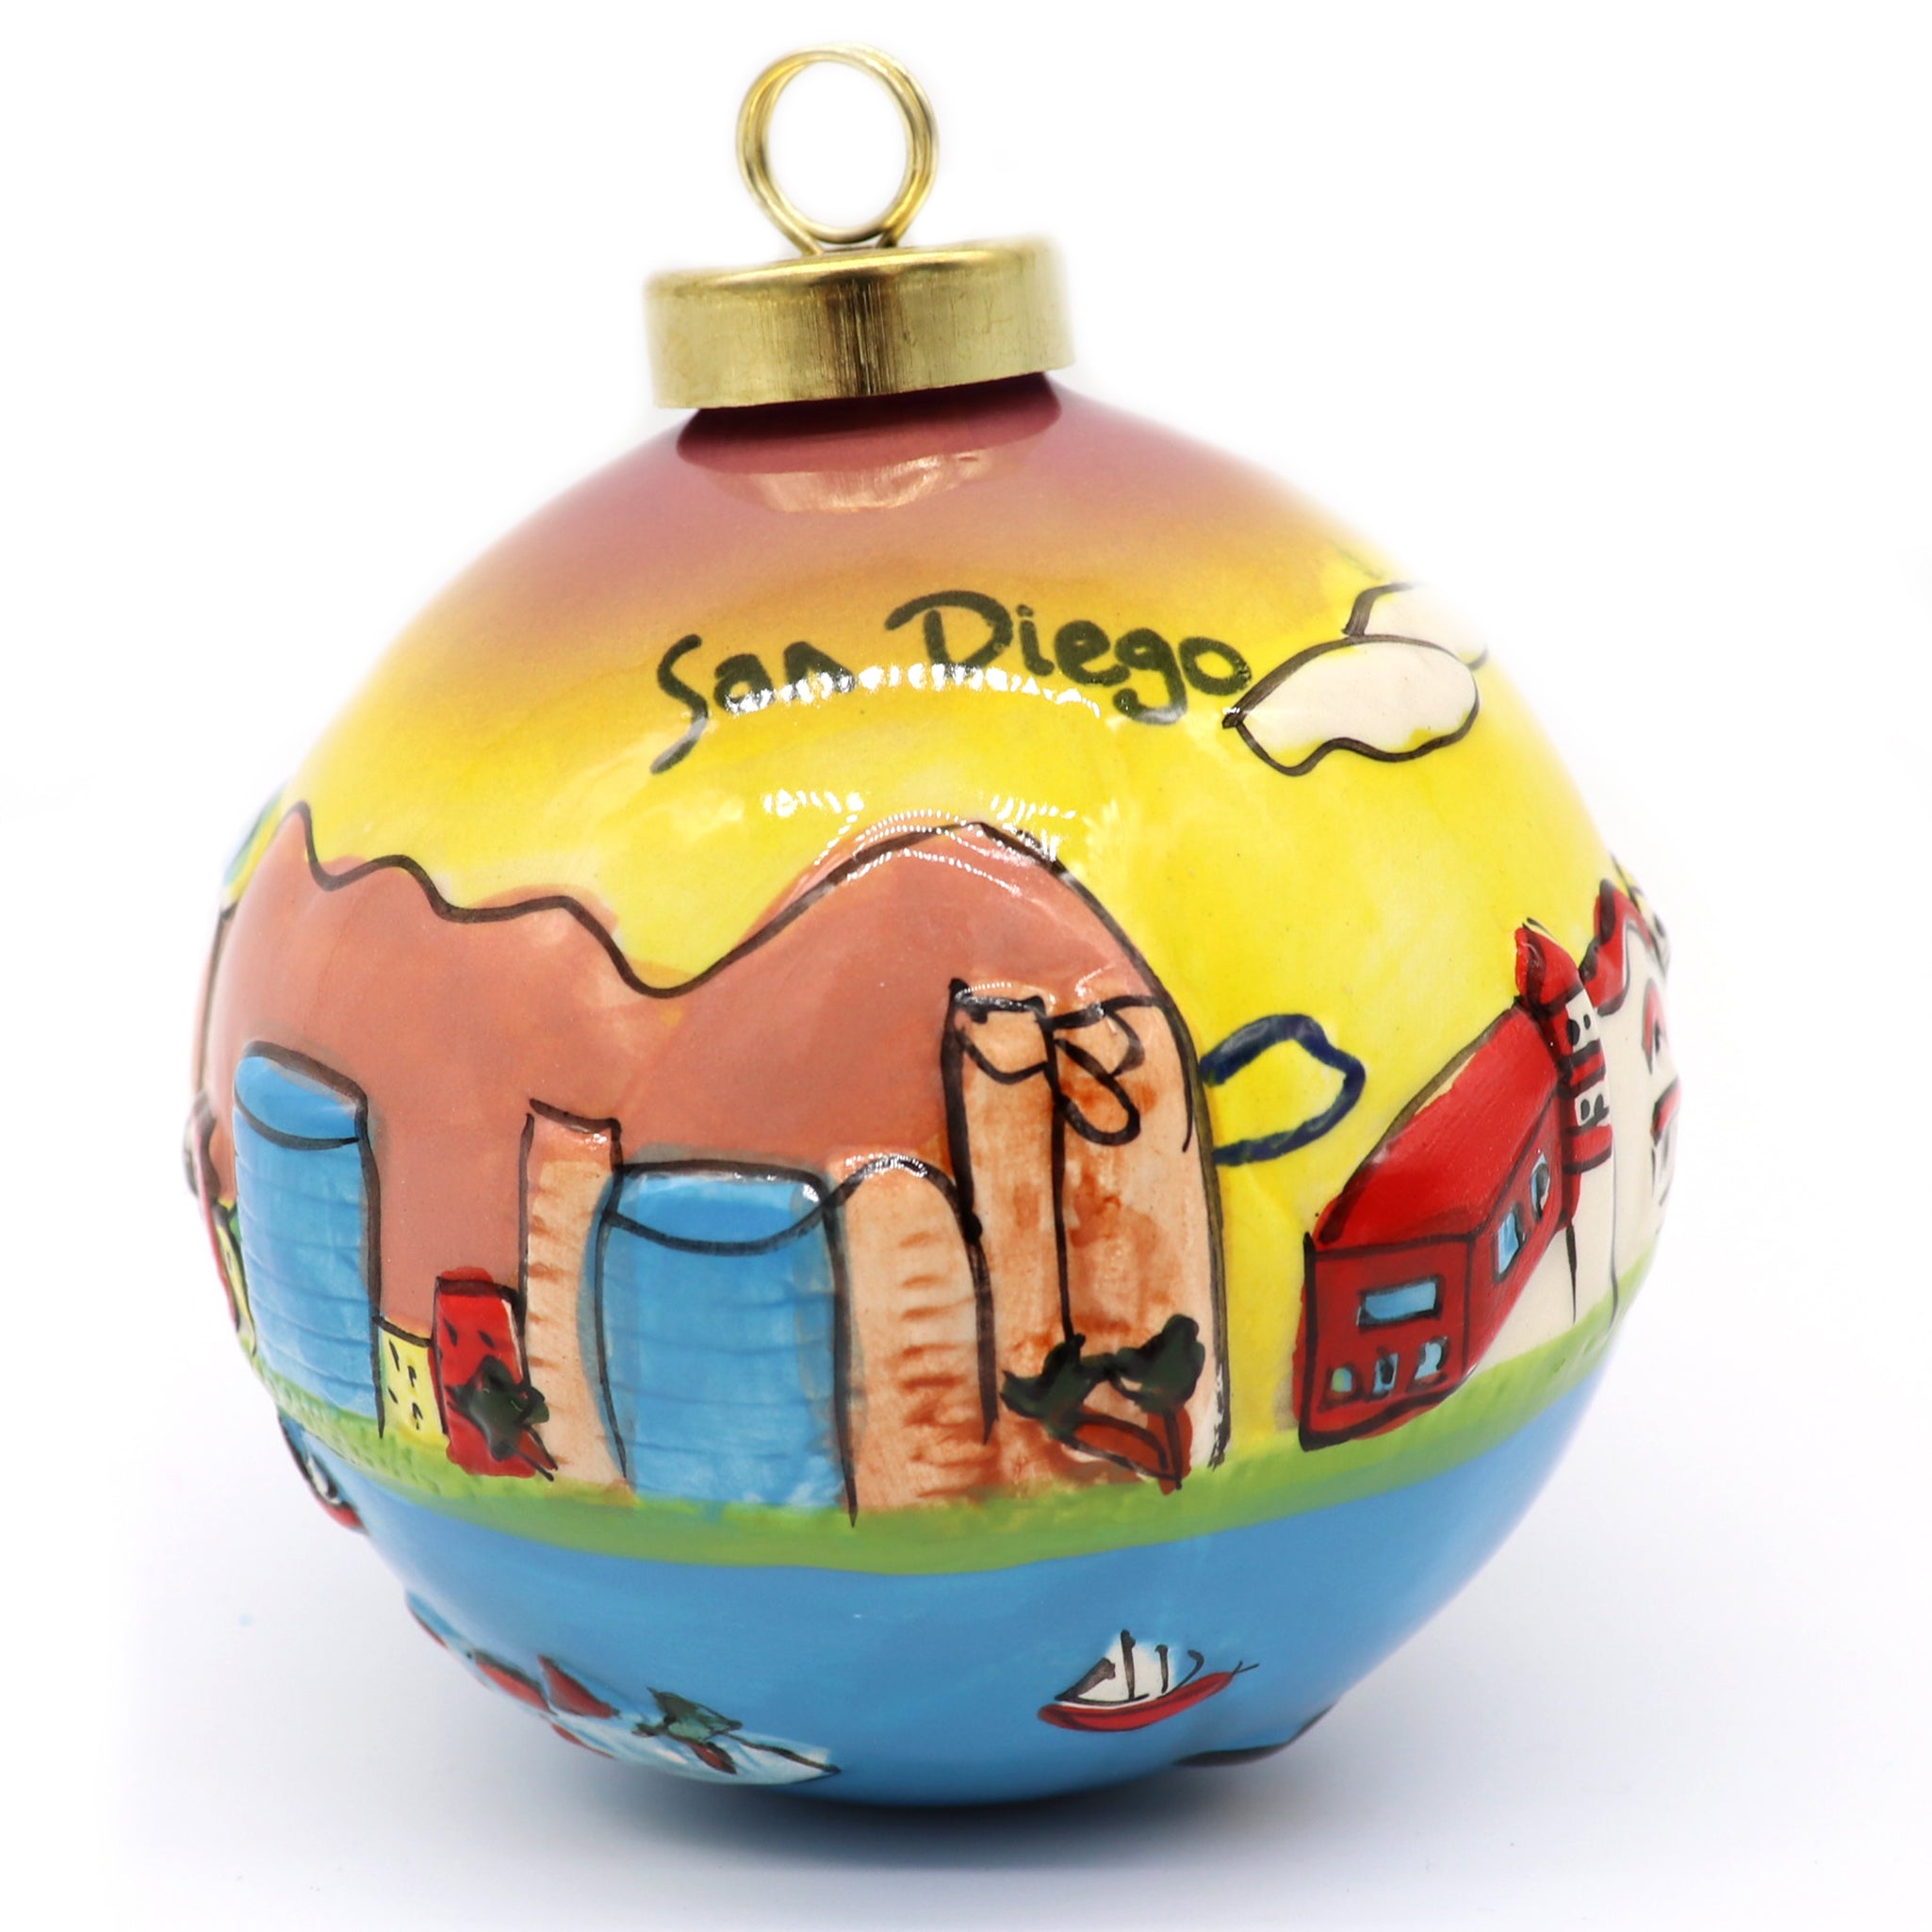 San Diego Ornament for Christmas tree. Ceramic painted downtown buildings and water front marina with boats. San Diego printed in black on top of the yellow sun skyline. Gold clasp loop for hanging. Sold by SDTrading Co.